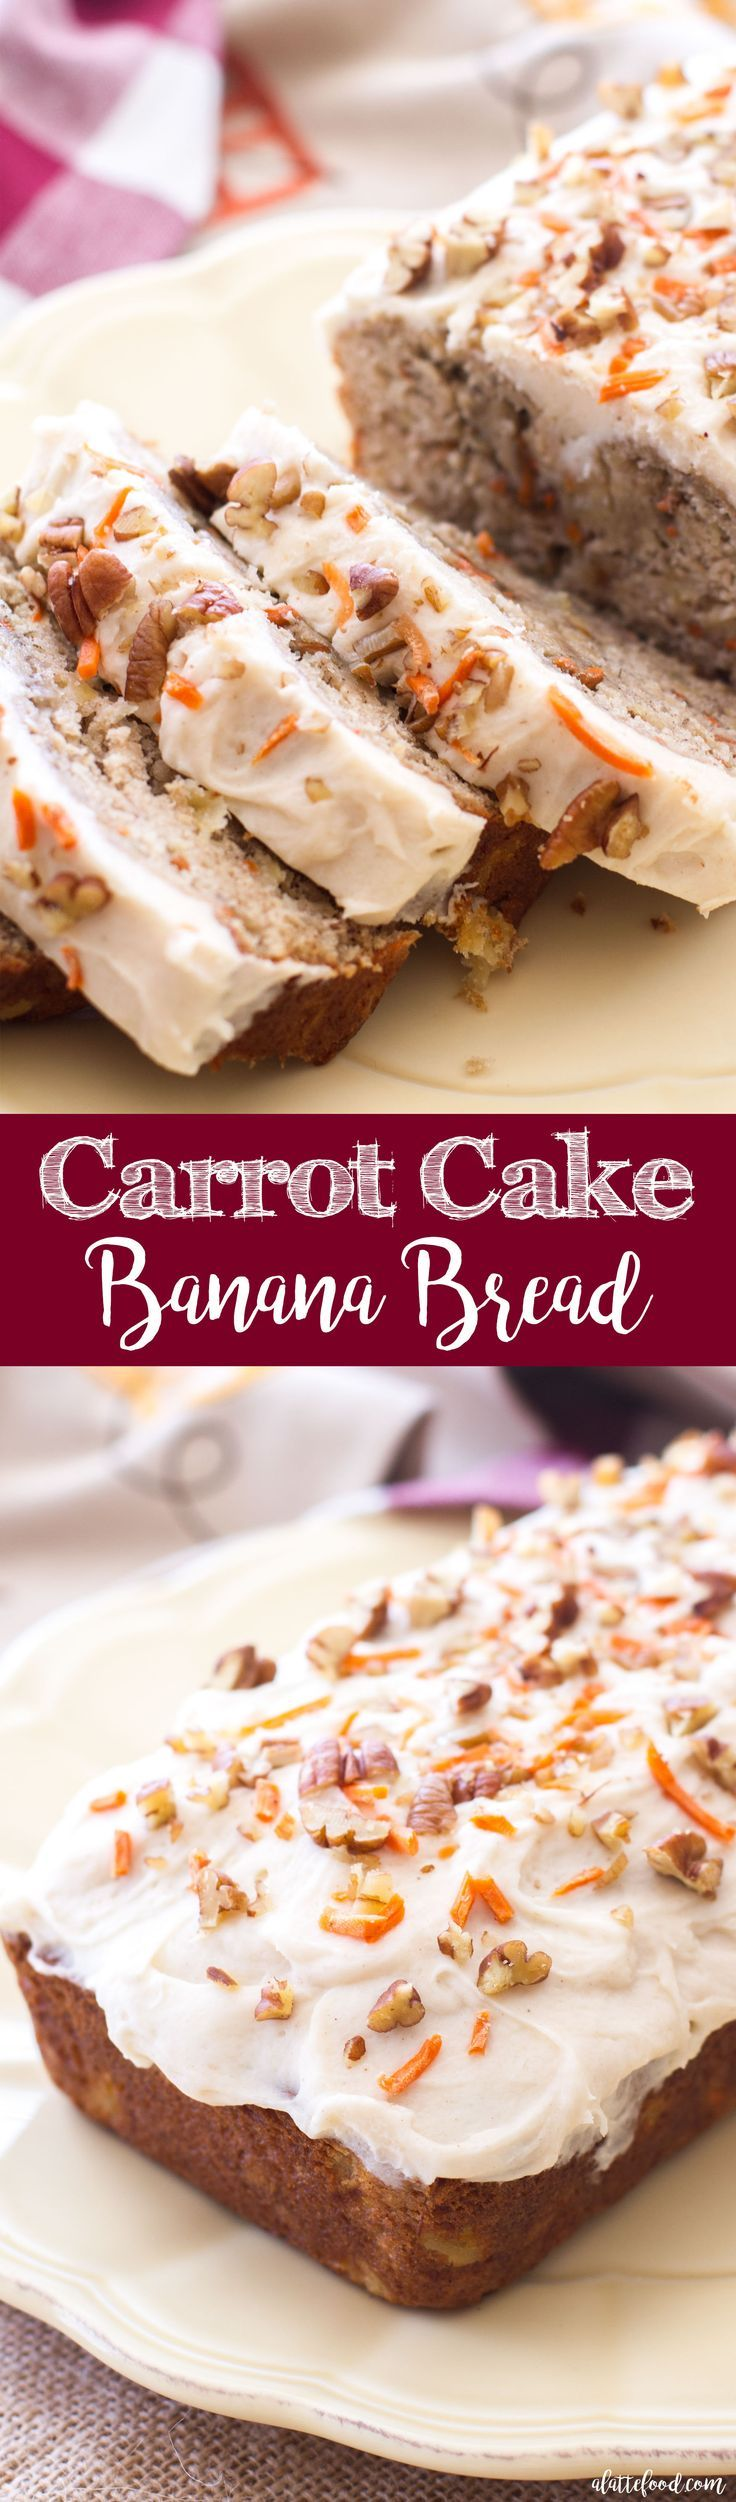 Carrot cake meets banana bread in this easy quick bread recipe! Moist, flavorful, and topped with rich homemade cream cheese